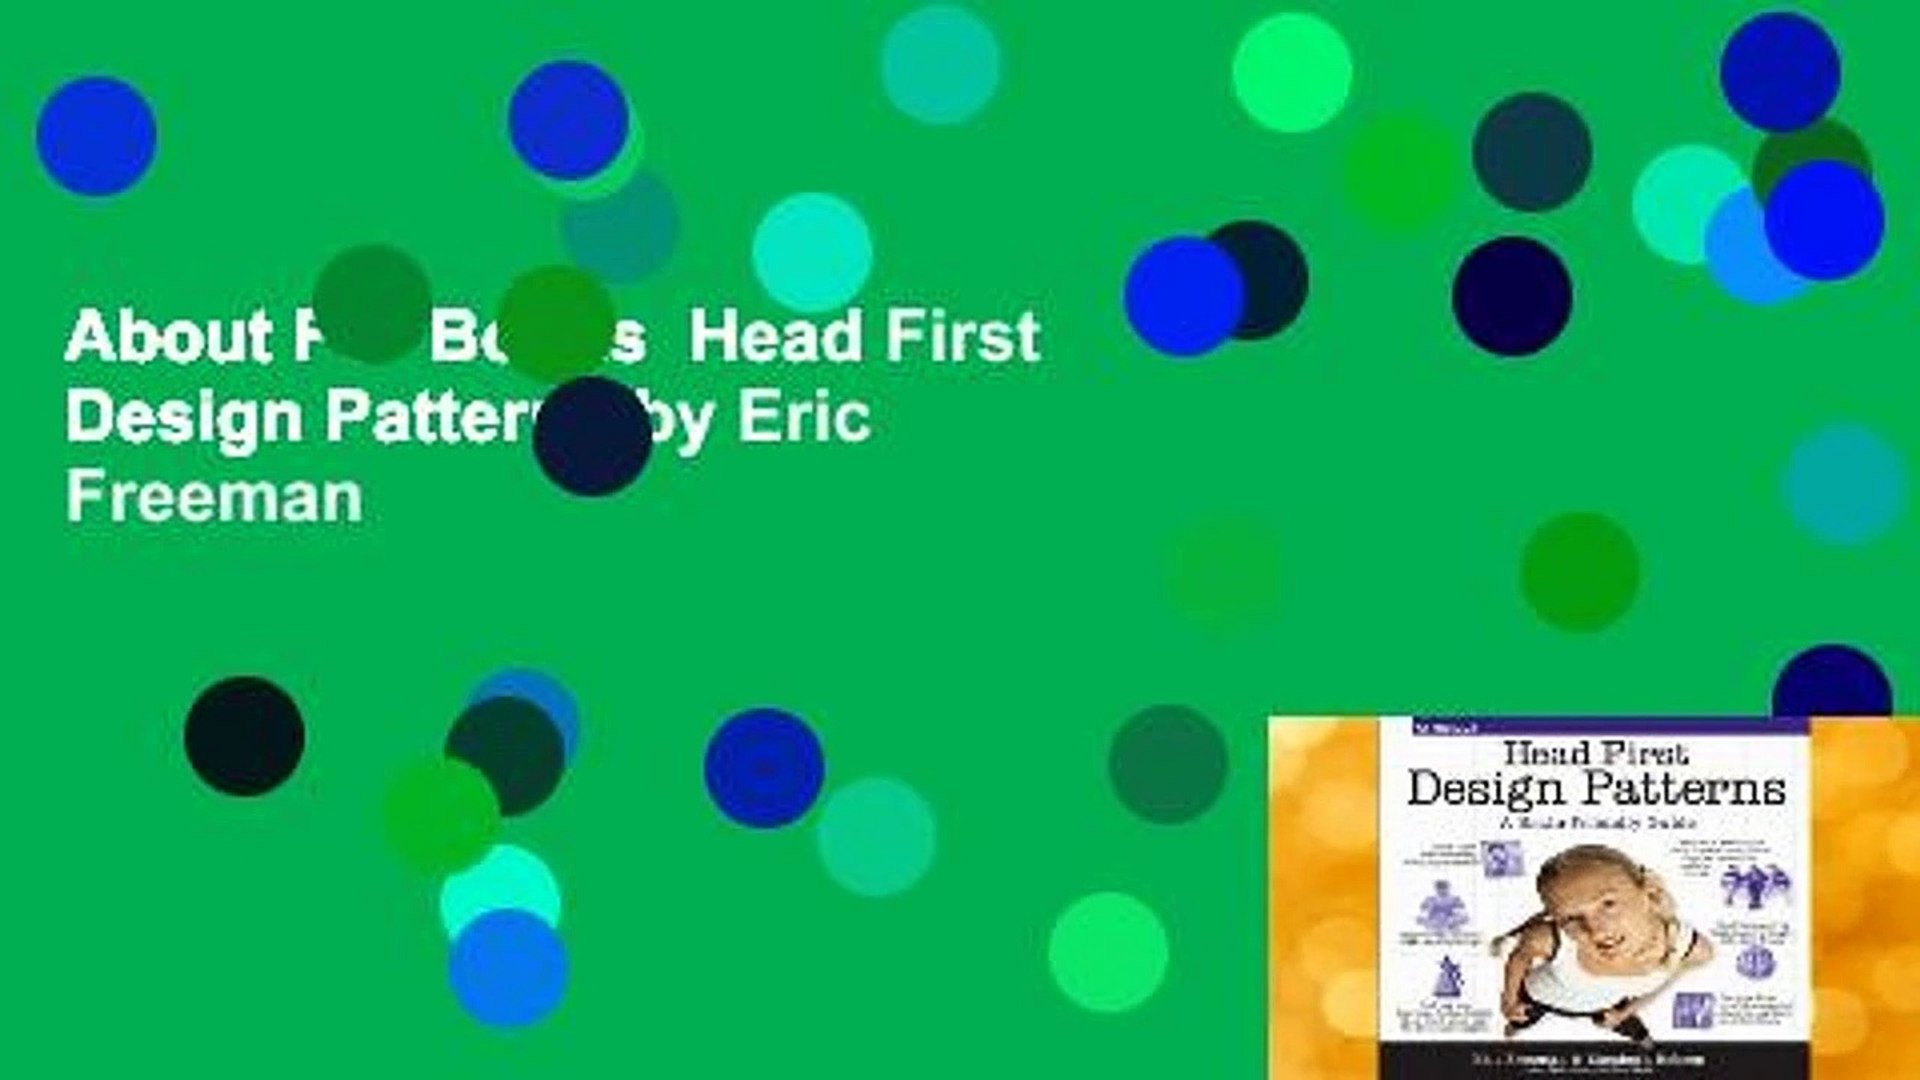 About For Books  Head First Design Patterns by Eric Freeman